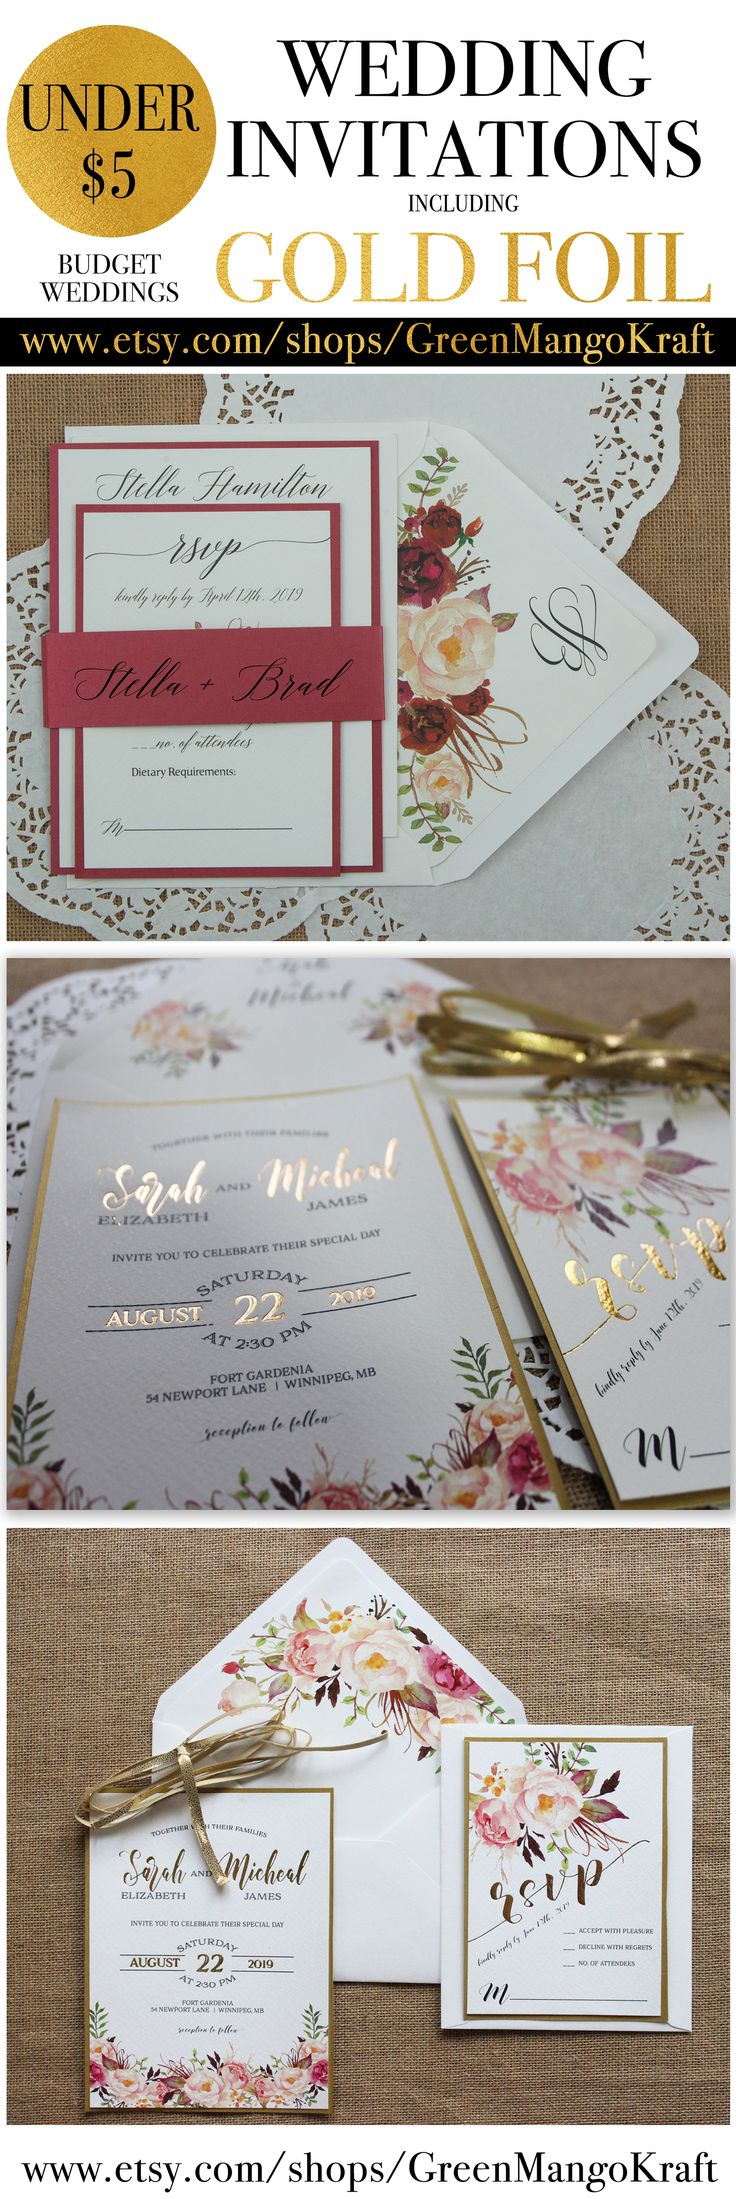 diy wedding invites rustic%0A Gold Foil Wedding Invitations Rustic Invitation Suite Gold Blush Pink  Watercolor Floral Rustic Wedding Invitation Suite